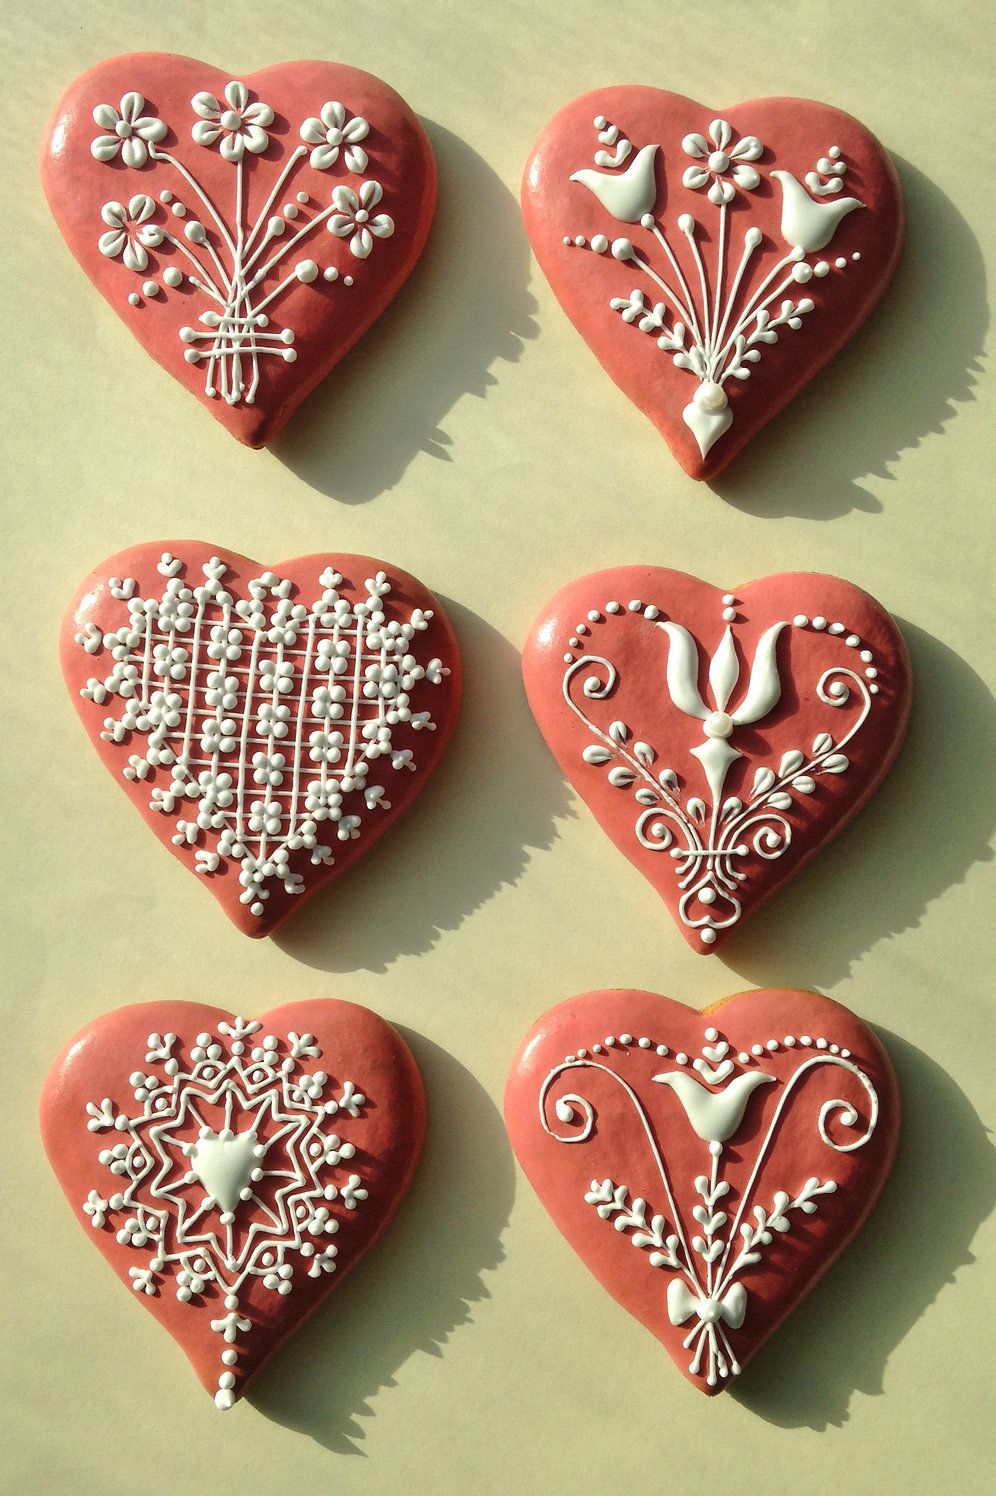 Pink Honey Hearts Heart Shaped Icing Decorated Gingerbread Cookies 6pcs Zsuzsa Miny Gifts